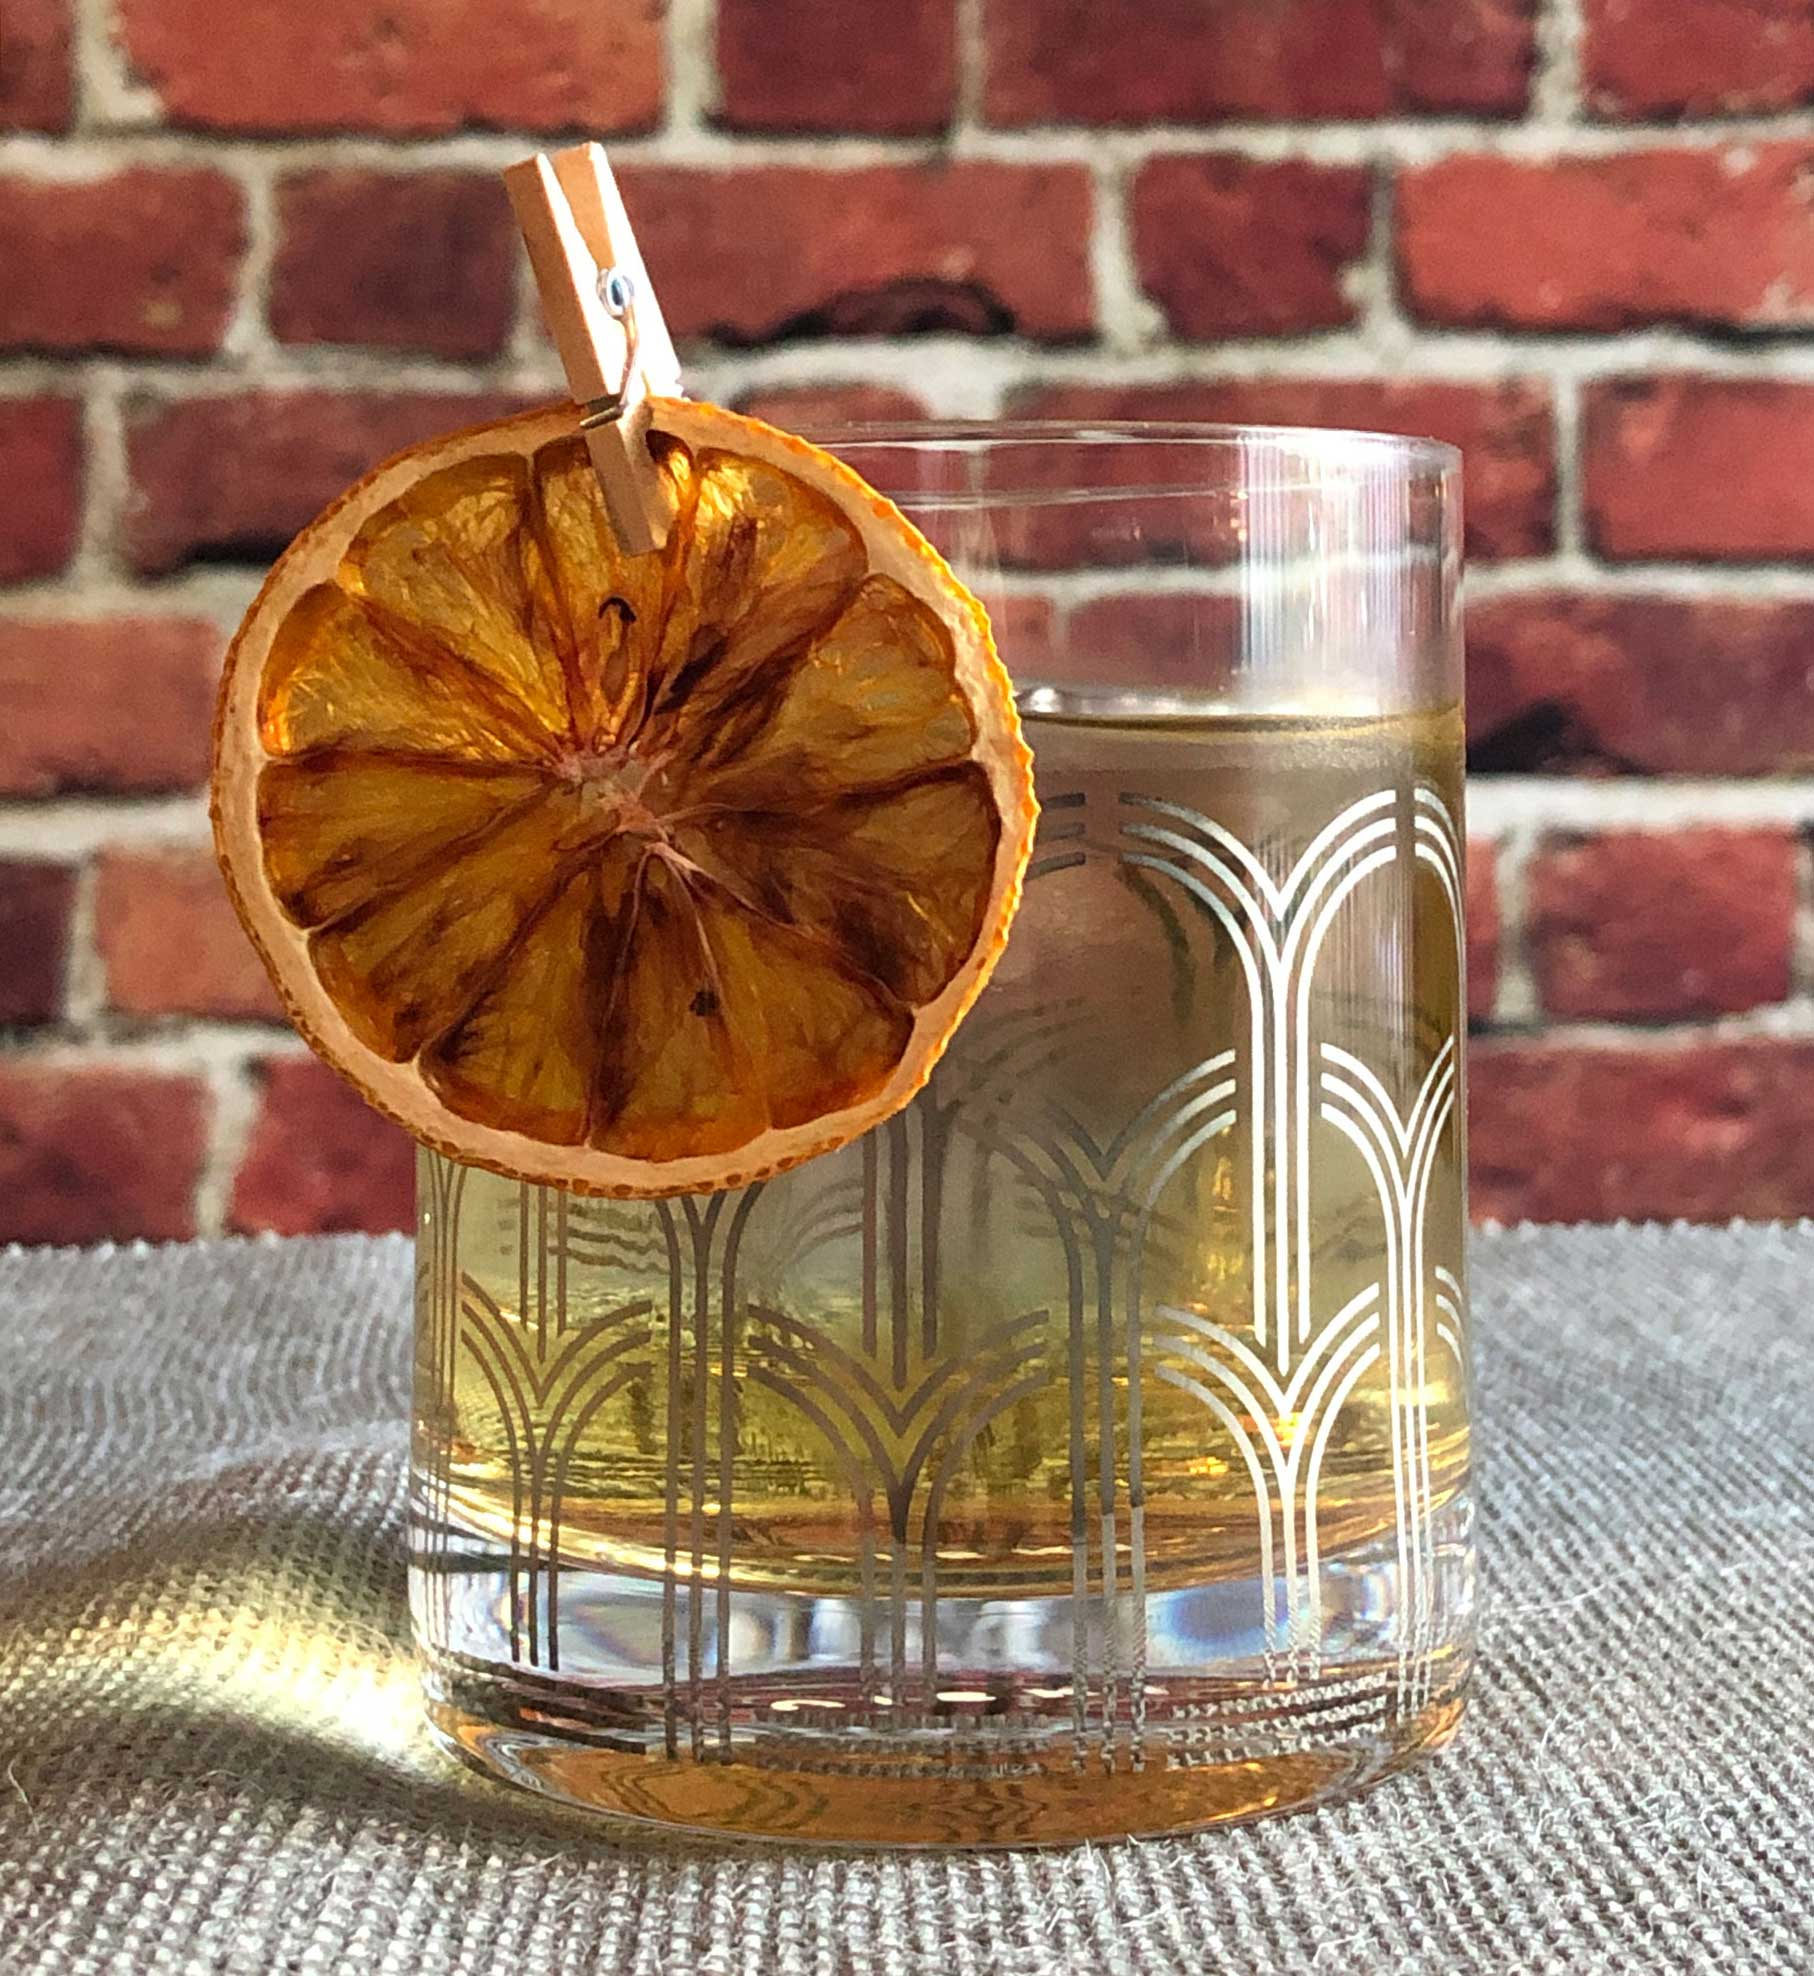 """An example of the Charlotte Gainsbourg, the mixed drink (cocktail), by Kelley Swenson, Portland, Oregon, from the book """"Left Coast Libations"""", featuring Cocchi Americano Bianco, orange-flavored liqueur, and pastis; photo by Lee Edwards"""